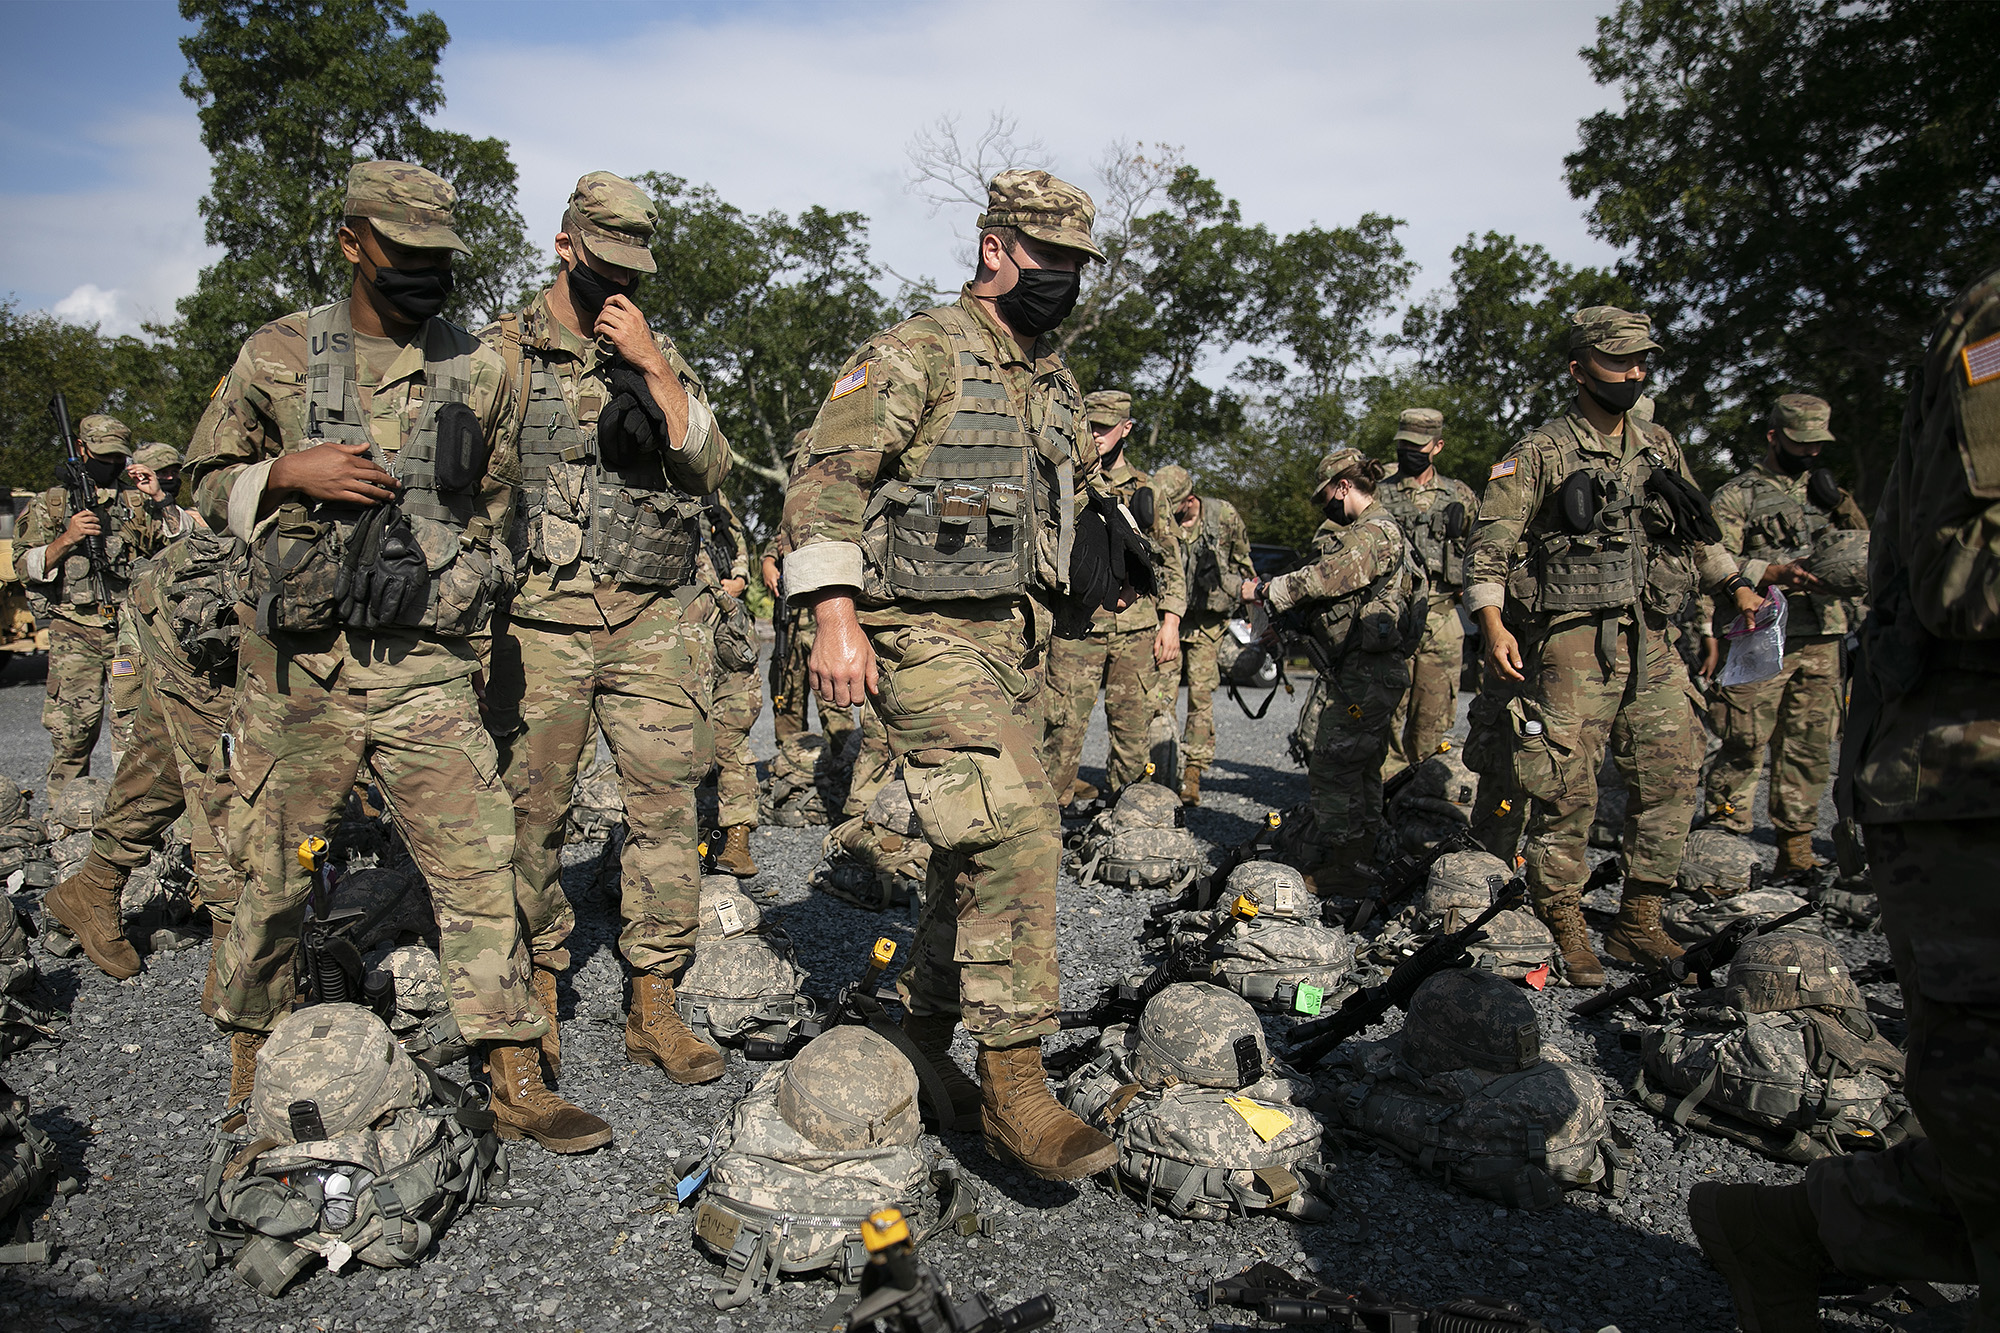 Cadets wear masks during training, Friday, Aug. 7, 2020, in West Point, N.Y. (Mark Lennihan/AP)